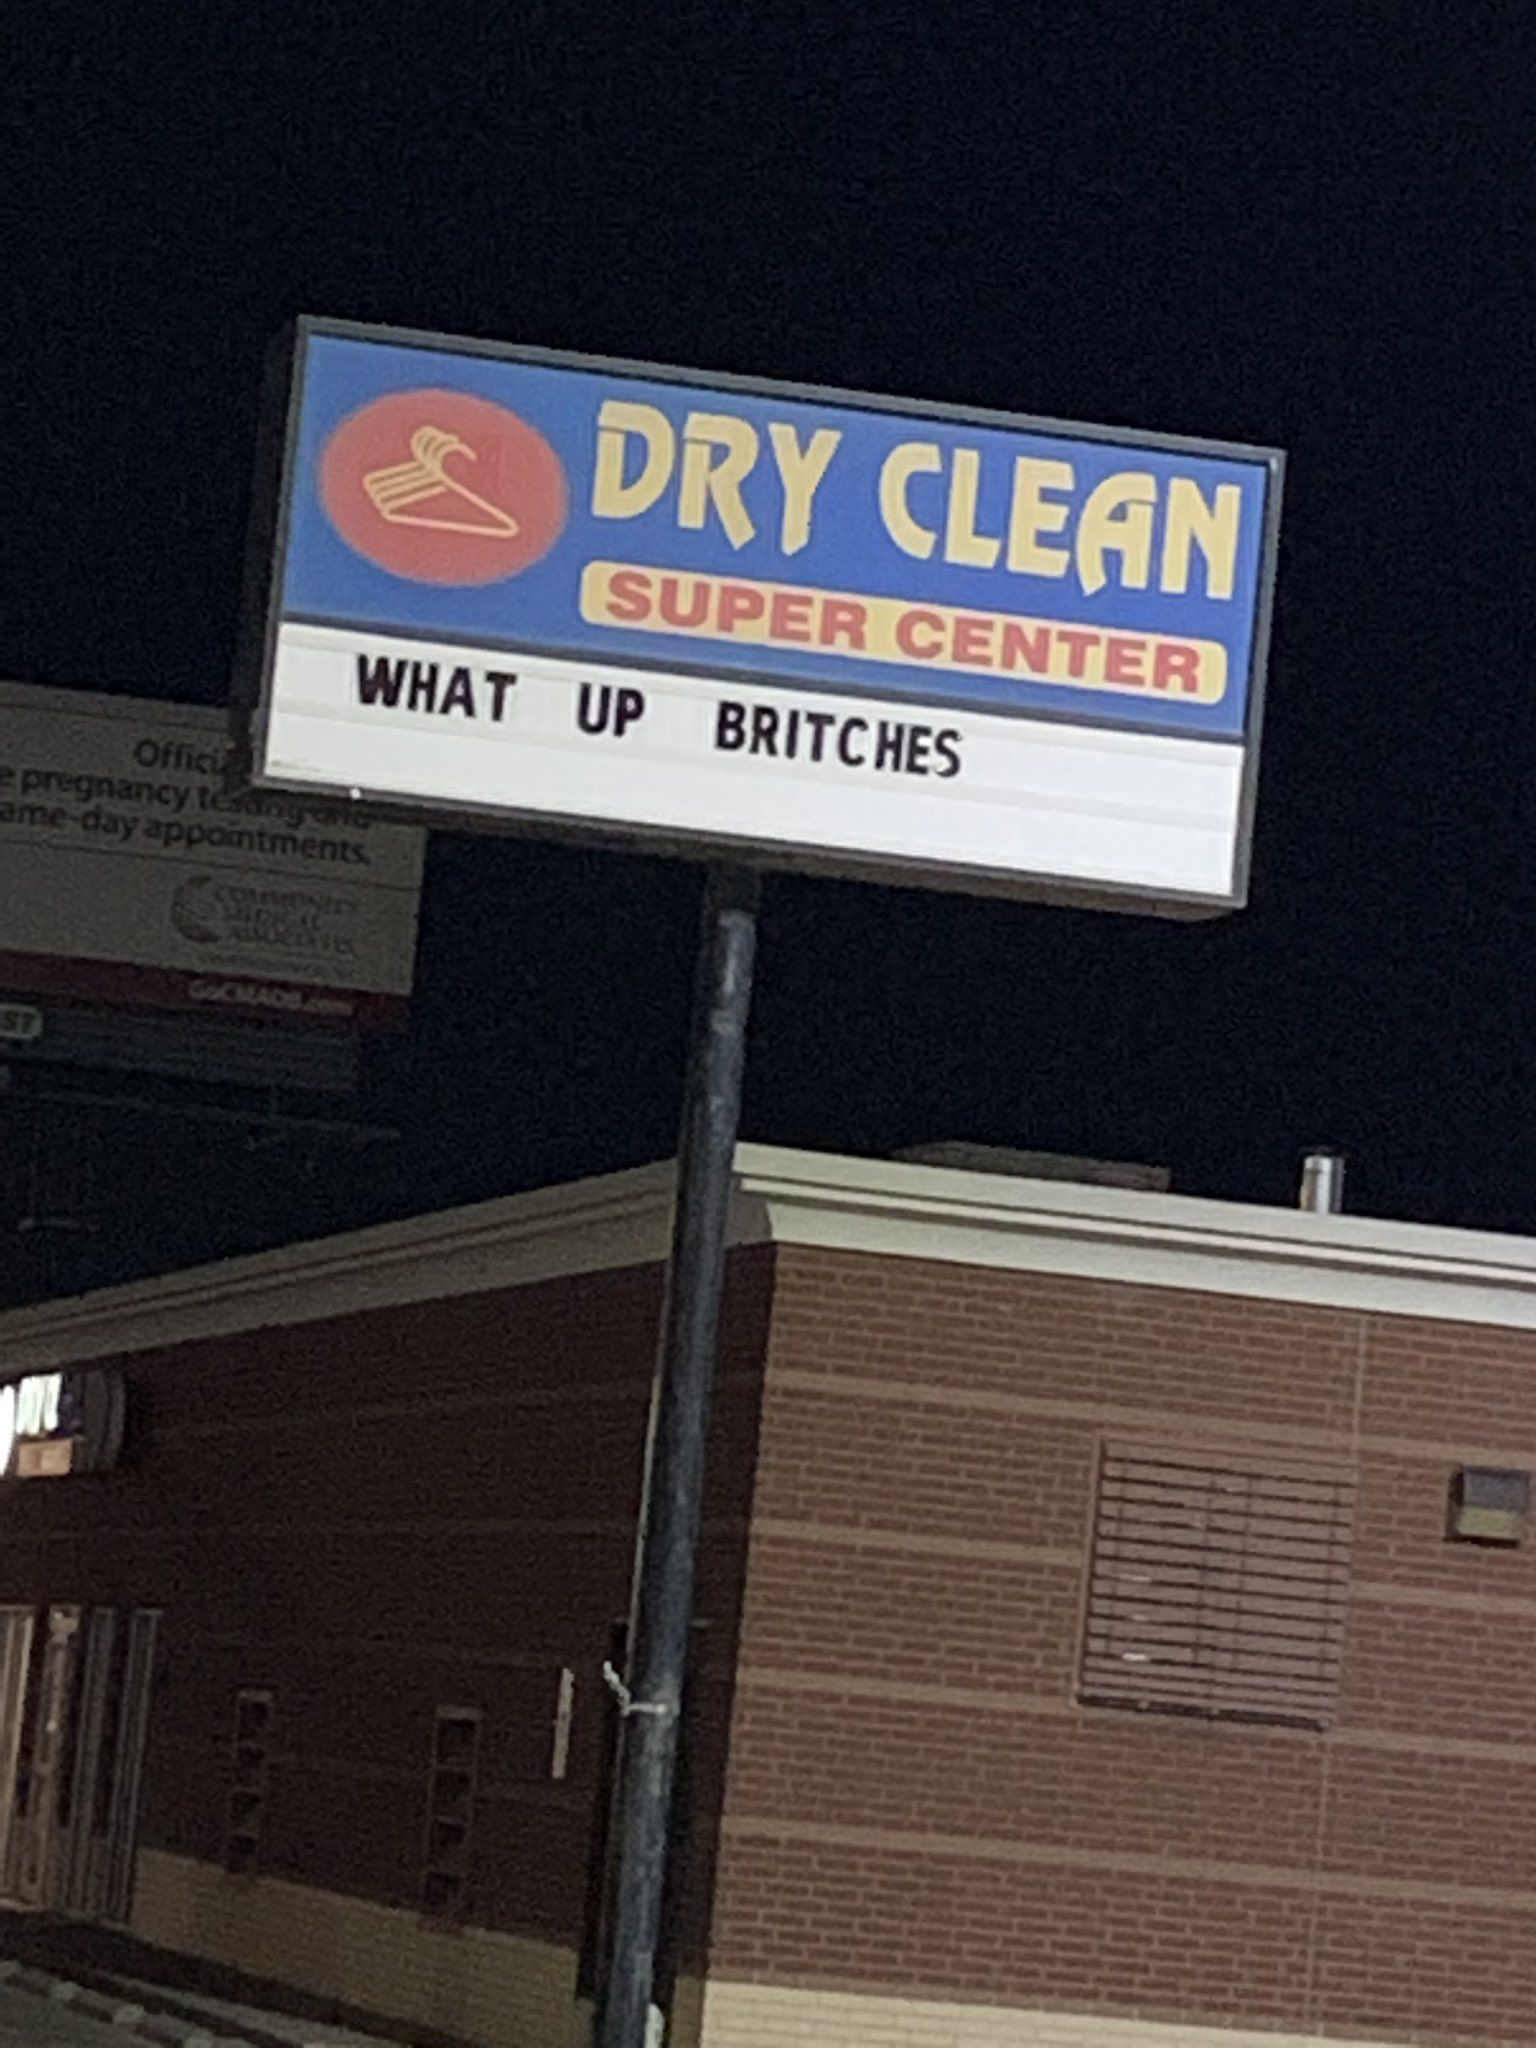 At the local dry cleaner